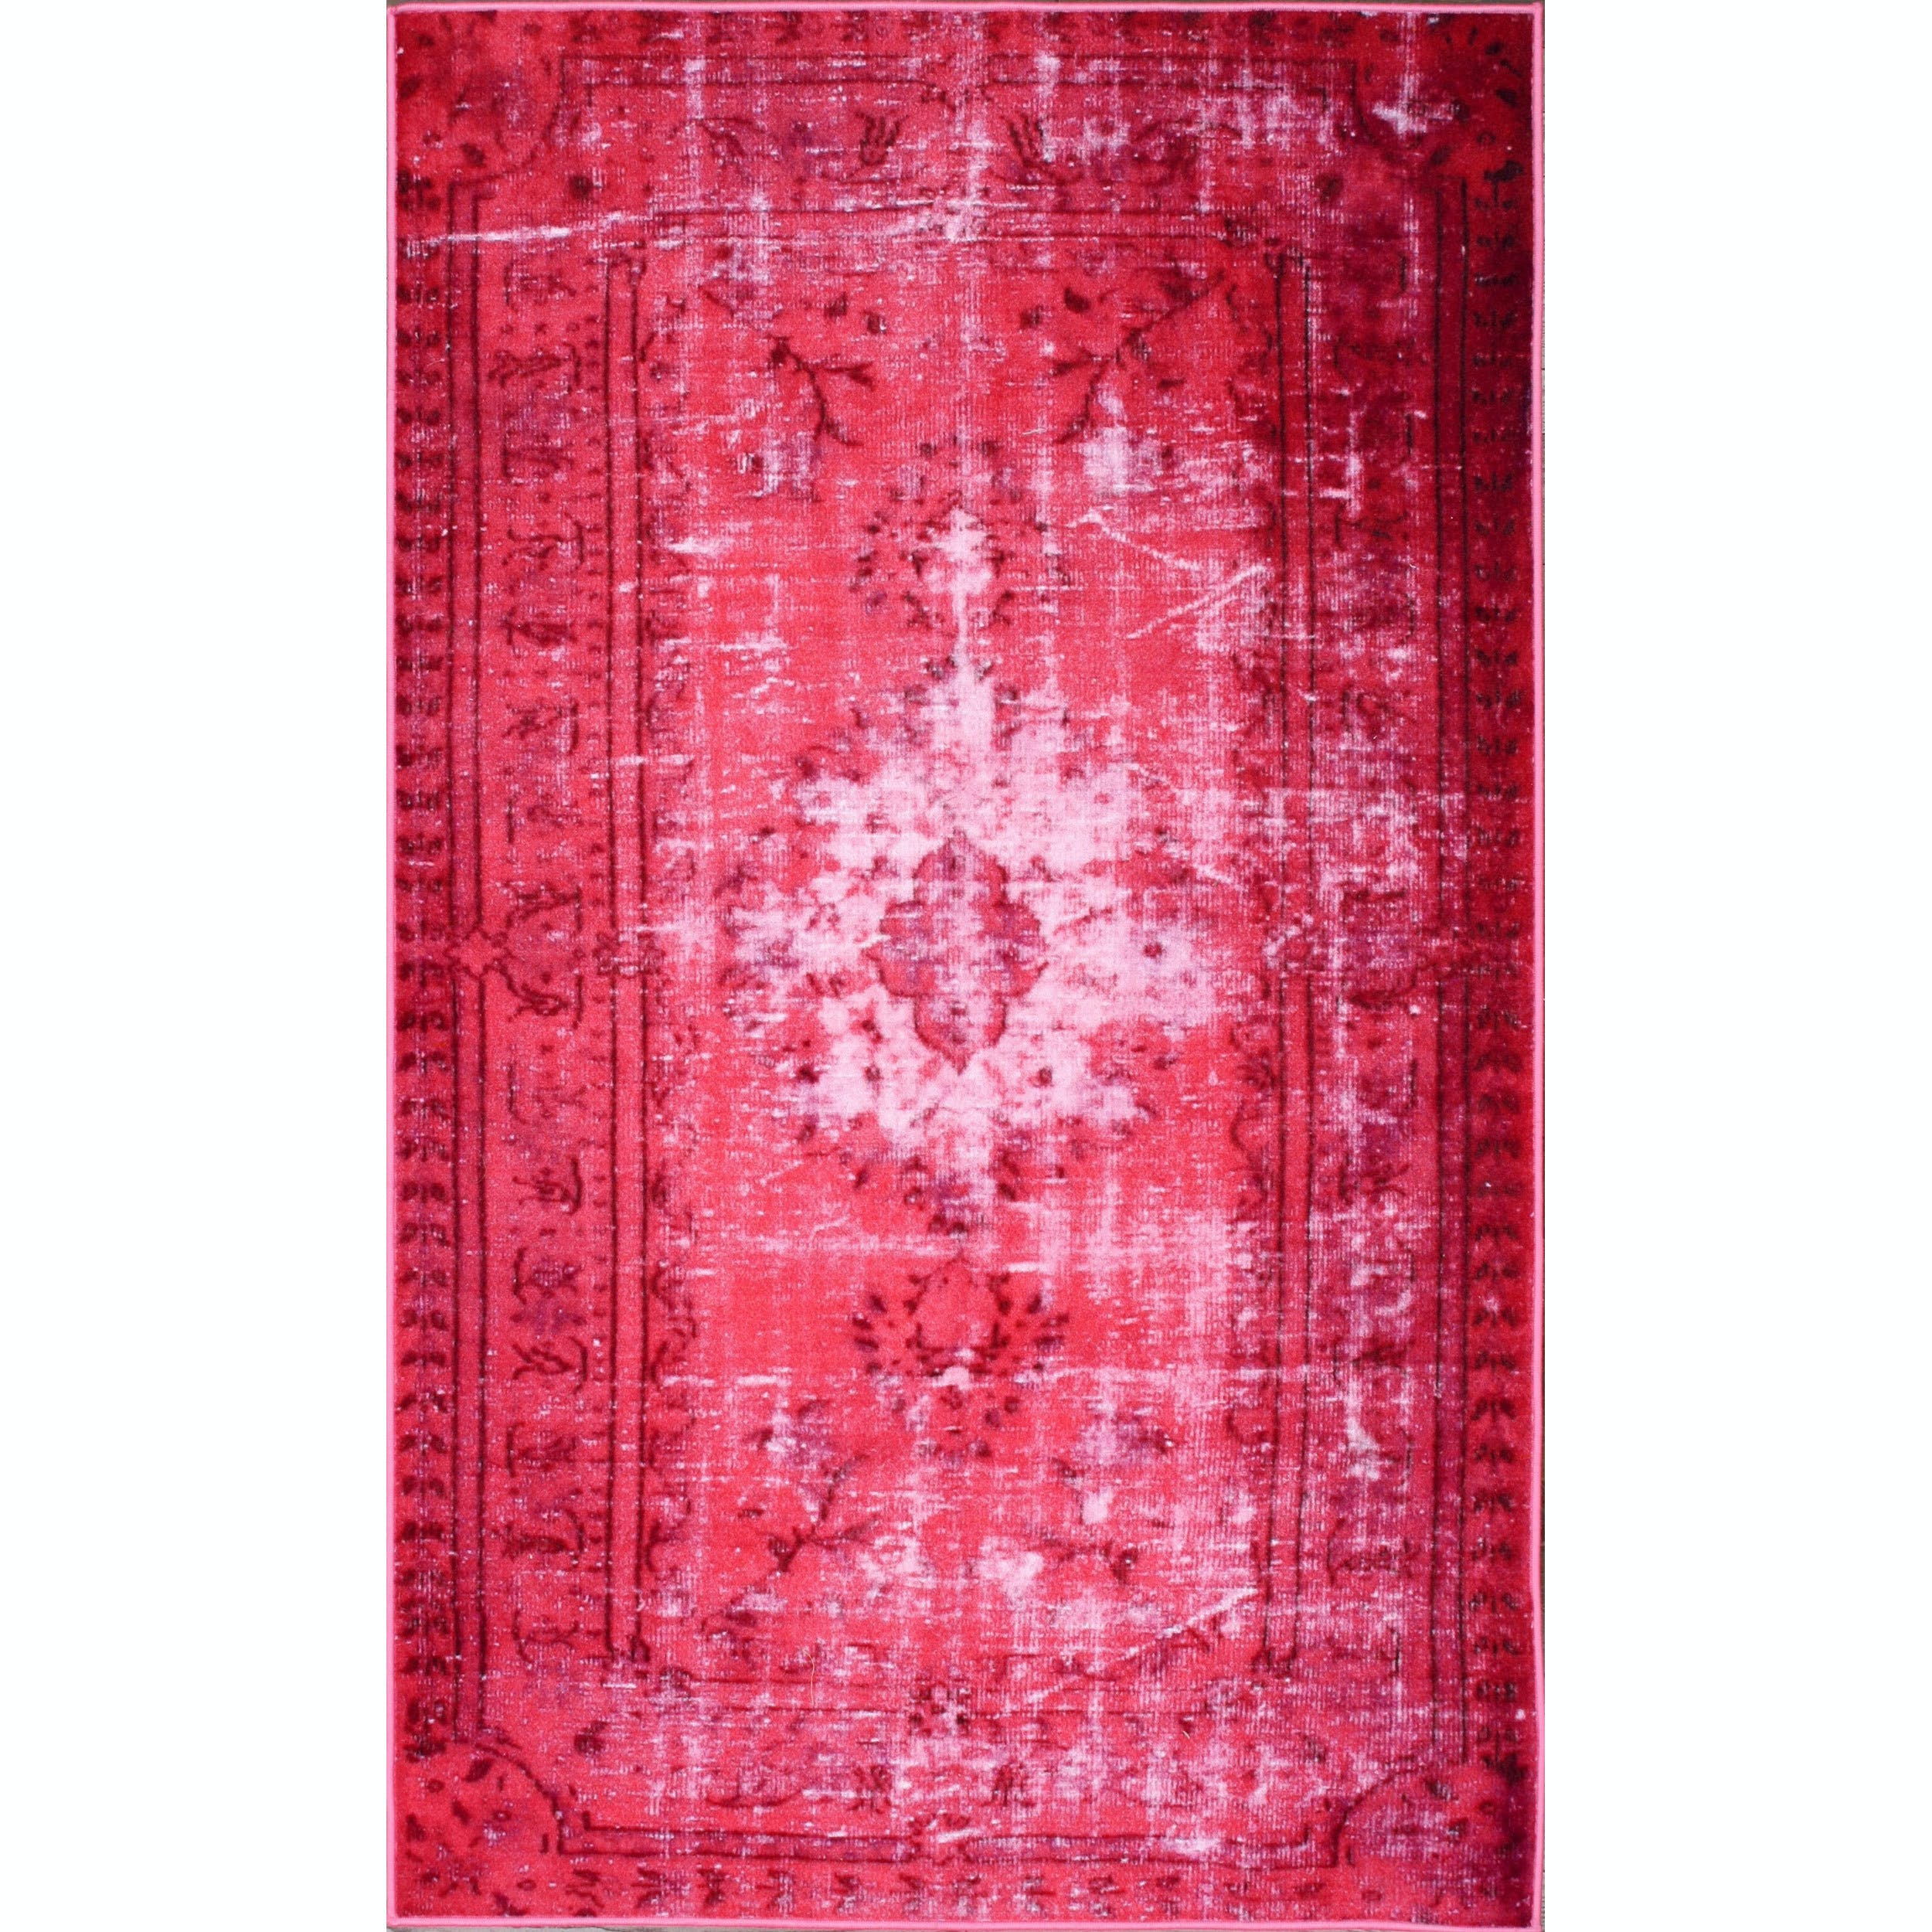 nuLOOM Vintage Inspired Adileh Overdyed Pink Rug 4 x 6 2b962494 ee03 4a10 aeac 4d395a896339